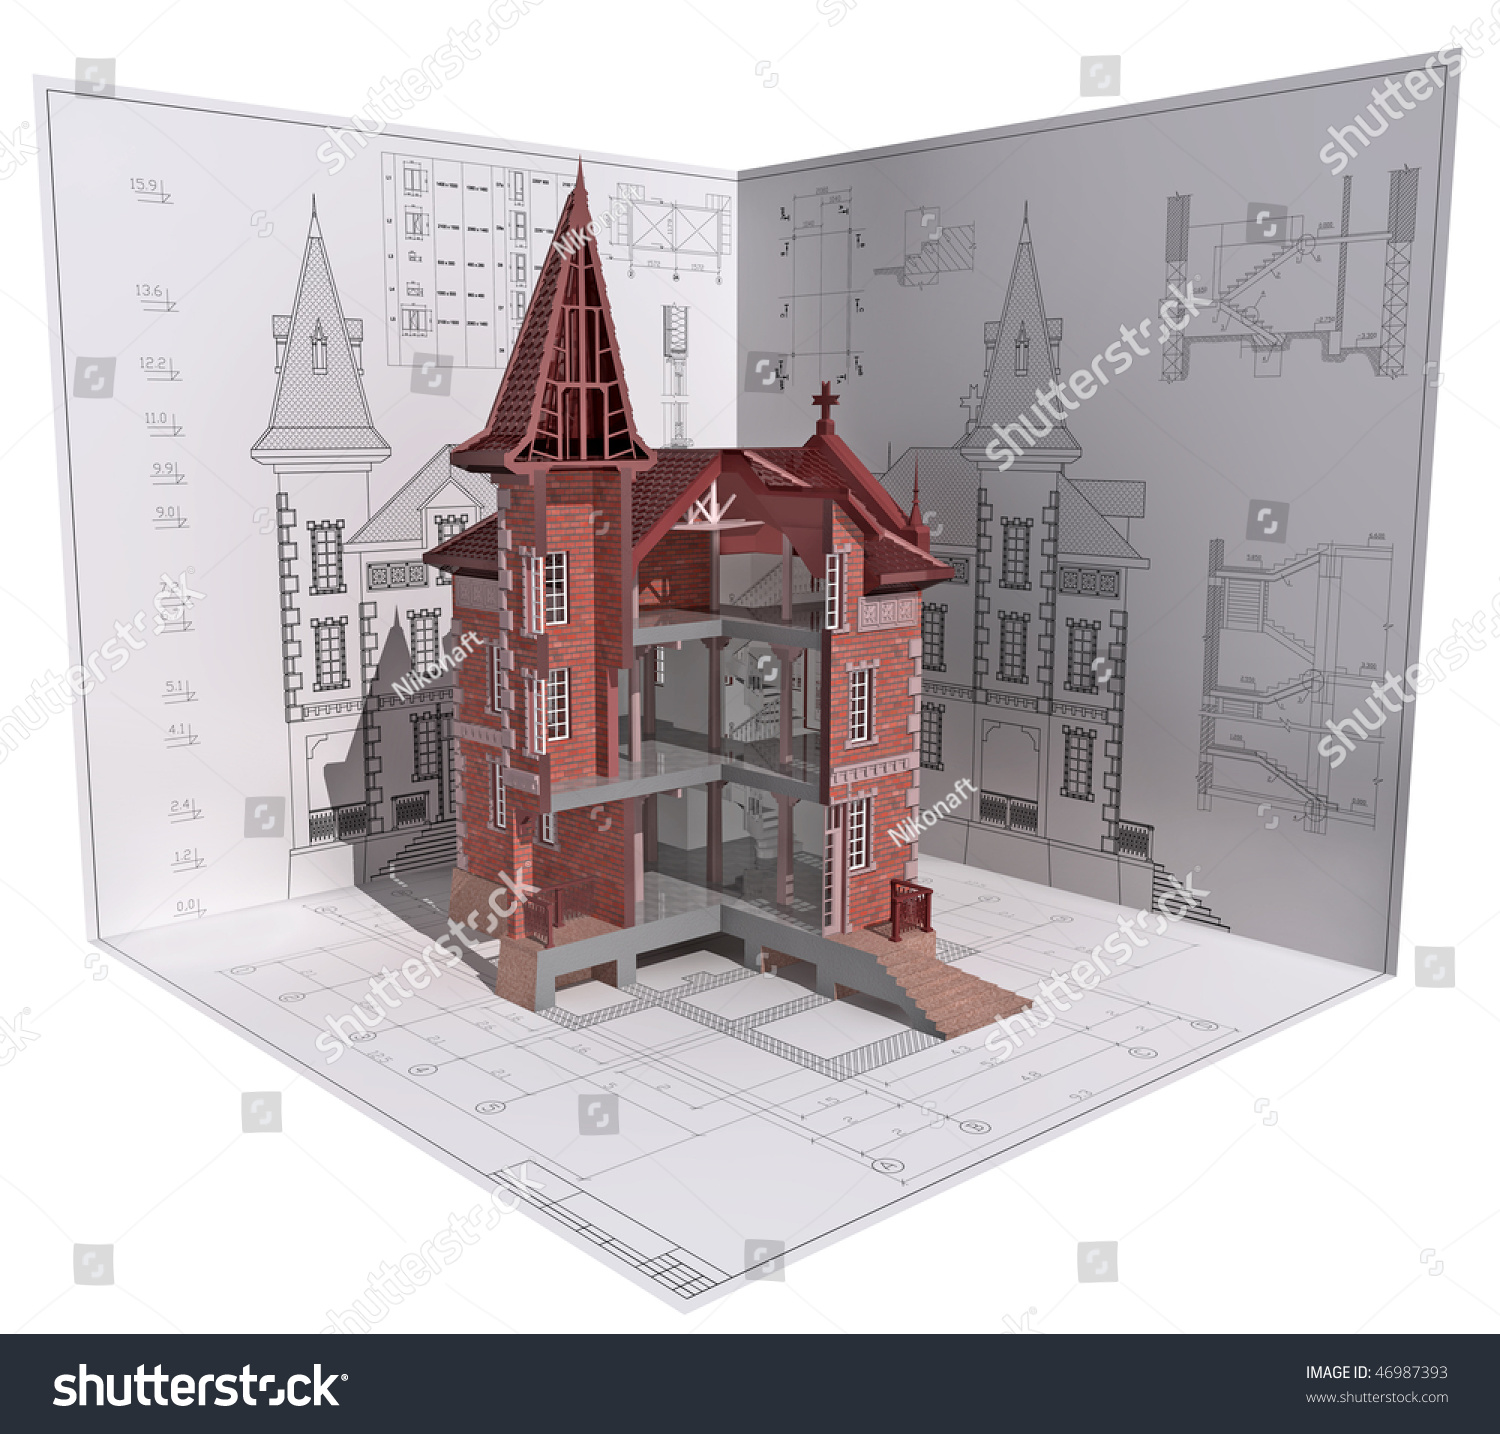 3d isometric view of the cut building on architect u0026 39 s